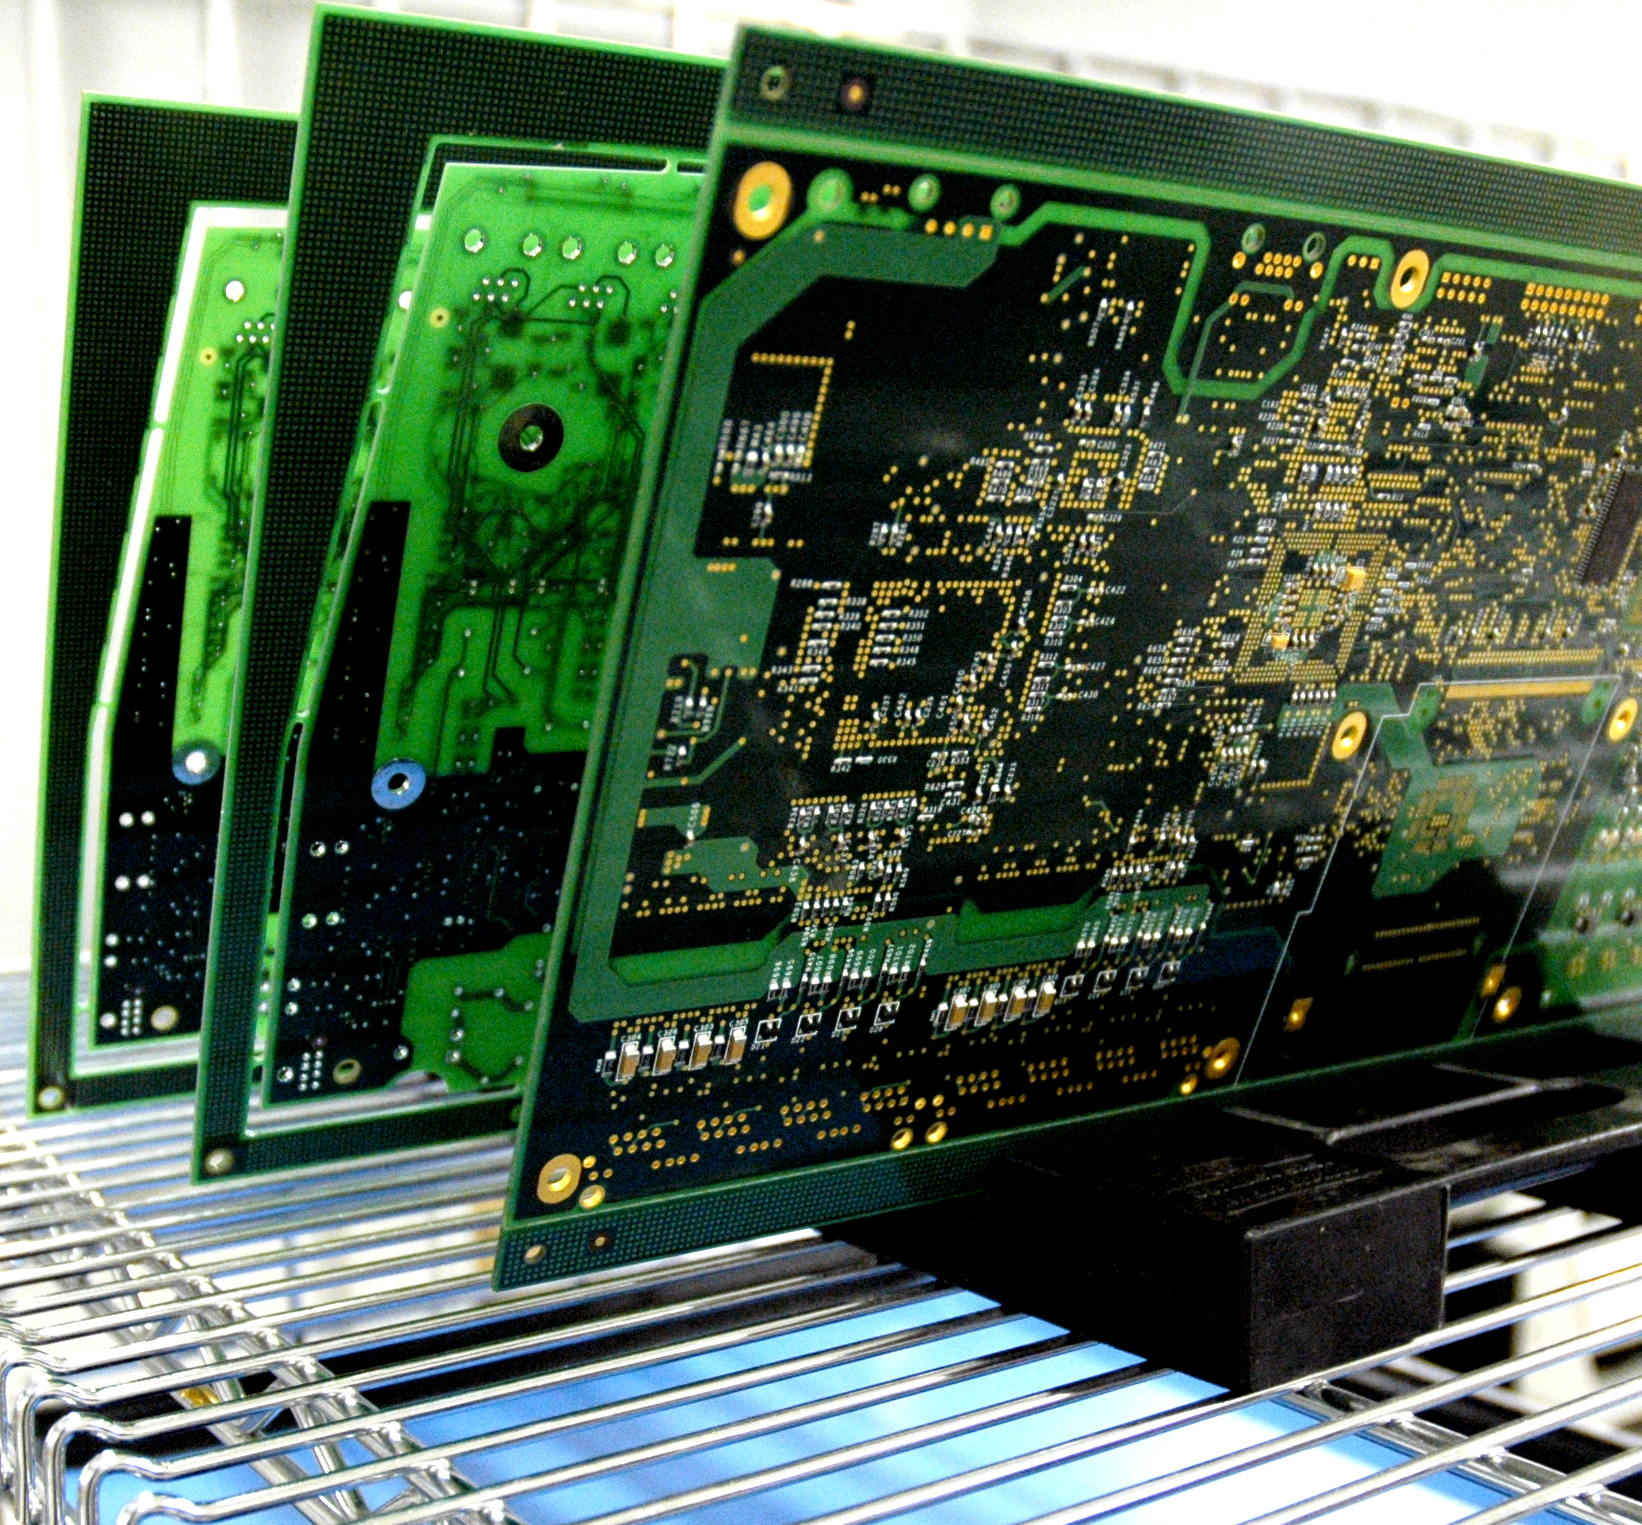 Federal Electronics Introduces Fully Integrated Ems Solution For Electronic Circuit A Leading Provider Of Manufacturing Services Has Introduced That Uniquely